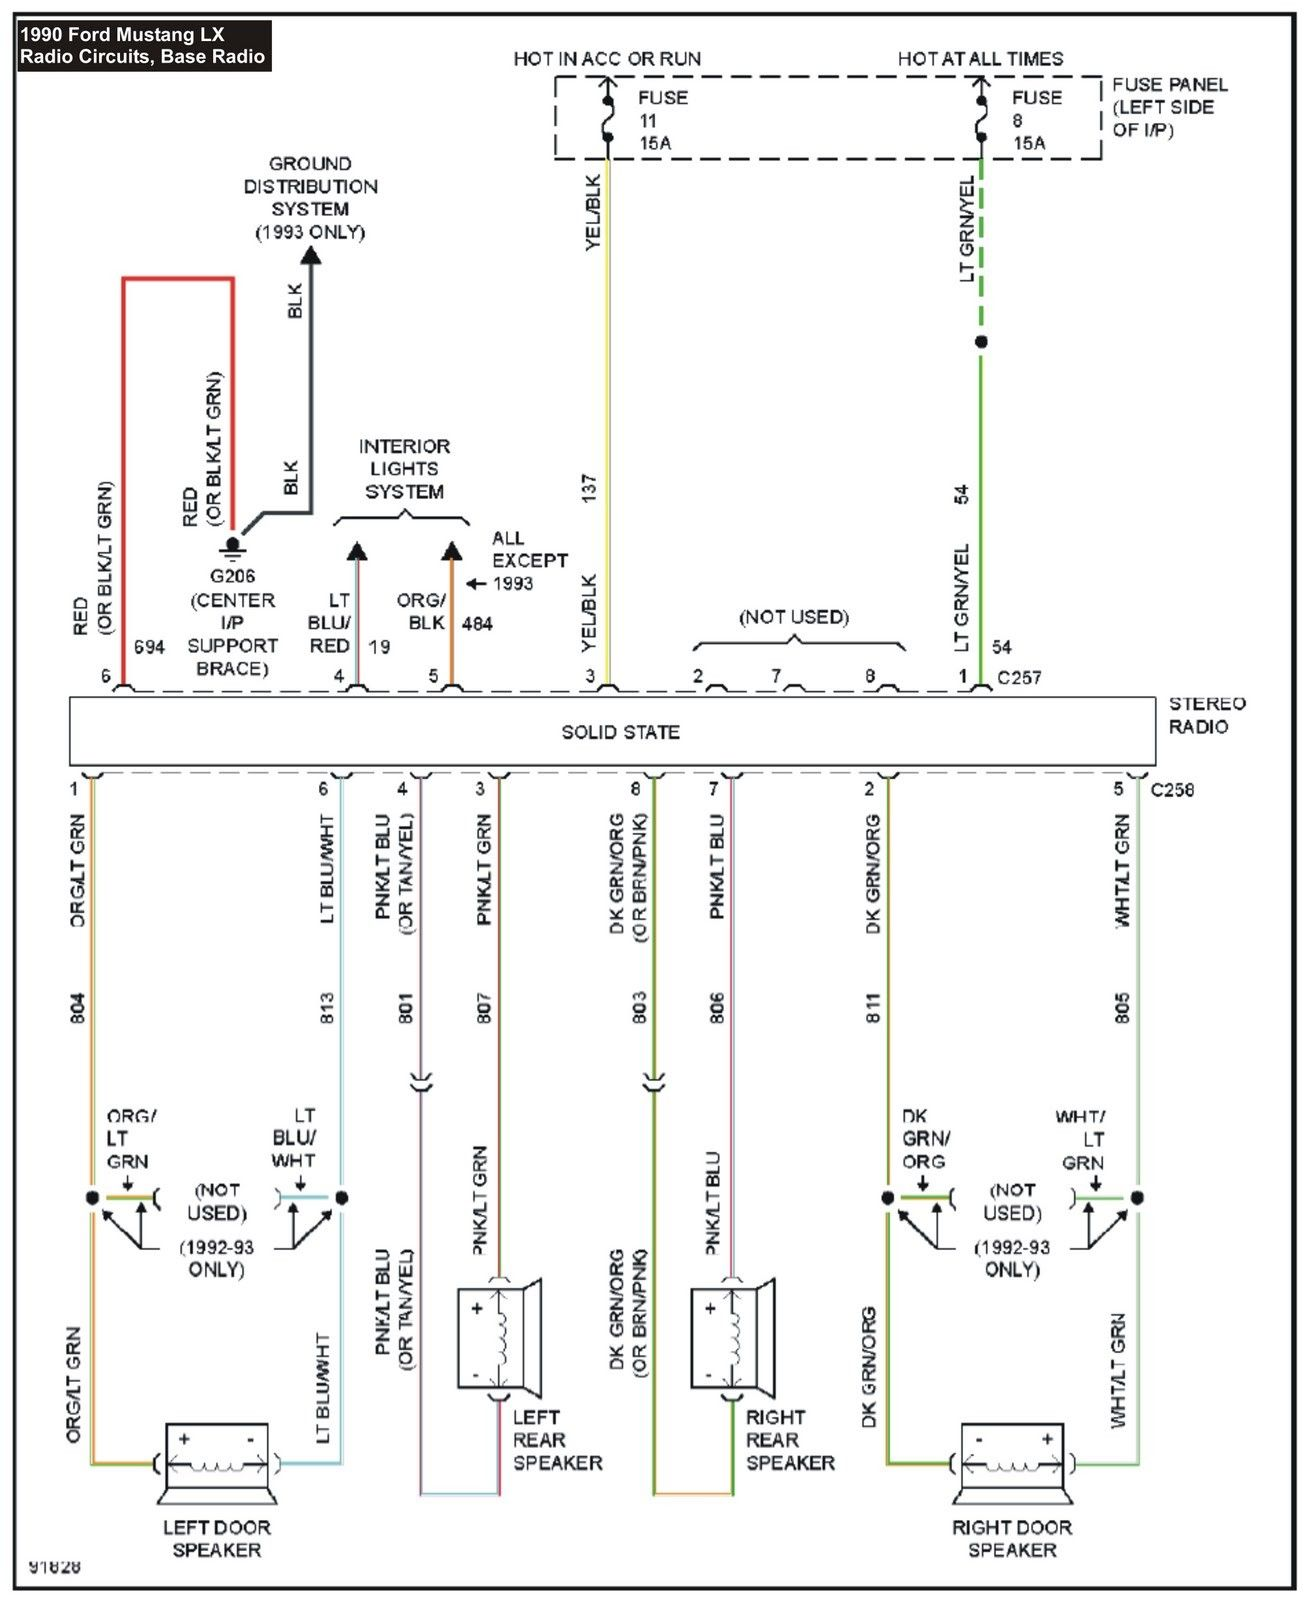 2004 Dodge Stratus Wiring Diagram from i.pinimg.com